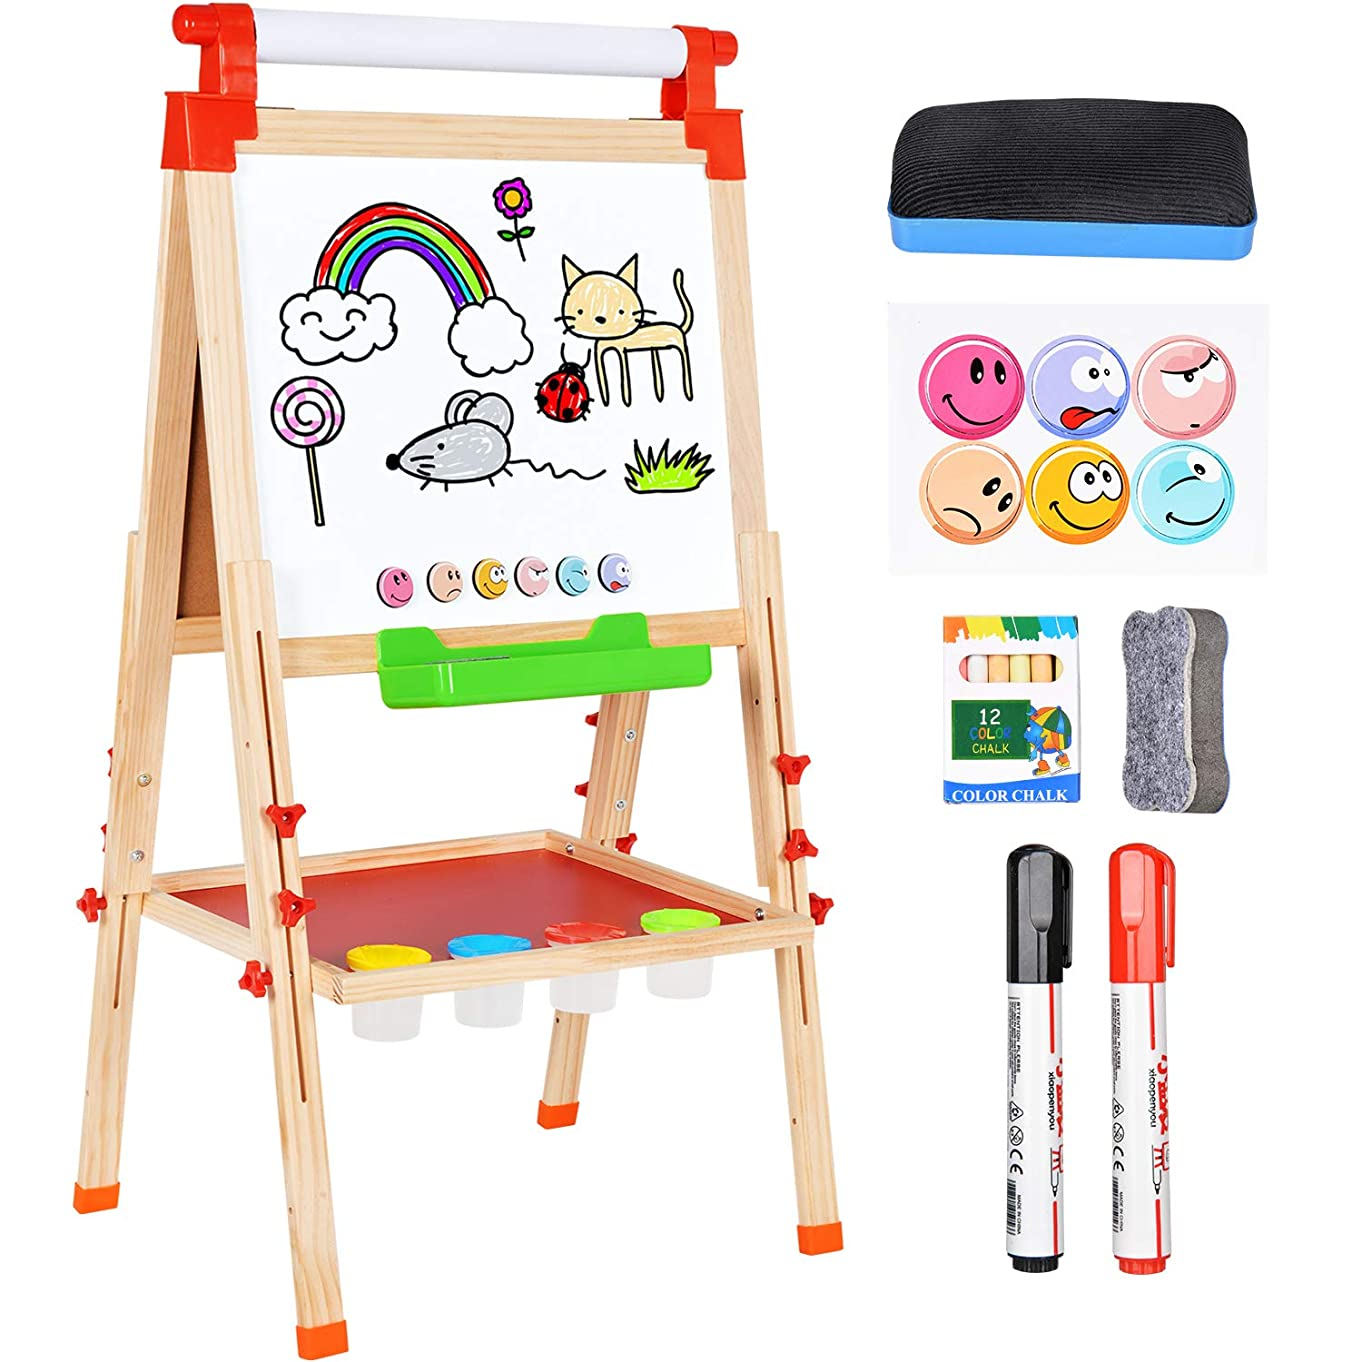 Amagoing 3 in 1 Wooden Easel for Kids, Double Sided Magnetic Black/White Board Toddler Art Easel Adjustable with Paper Roll